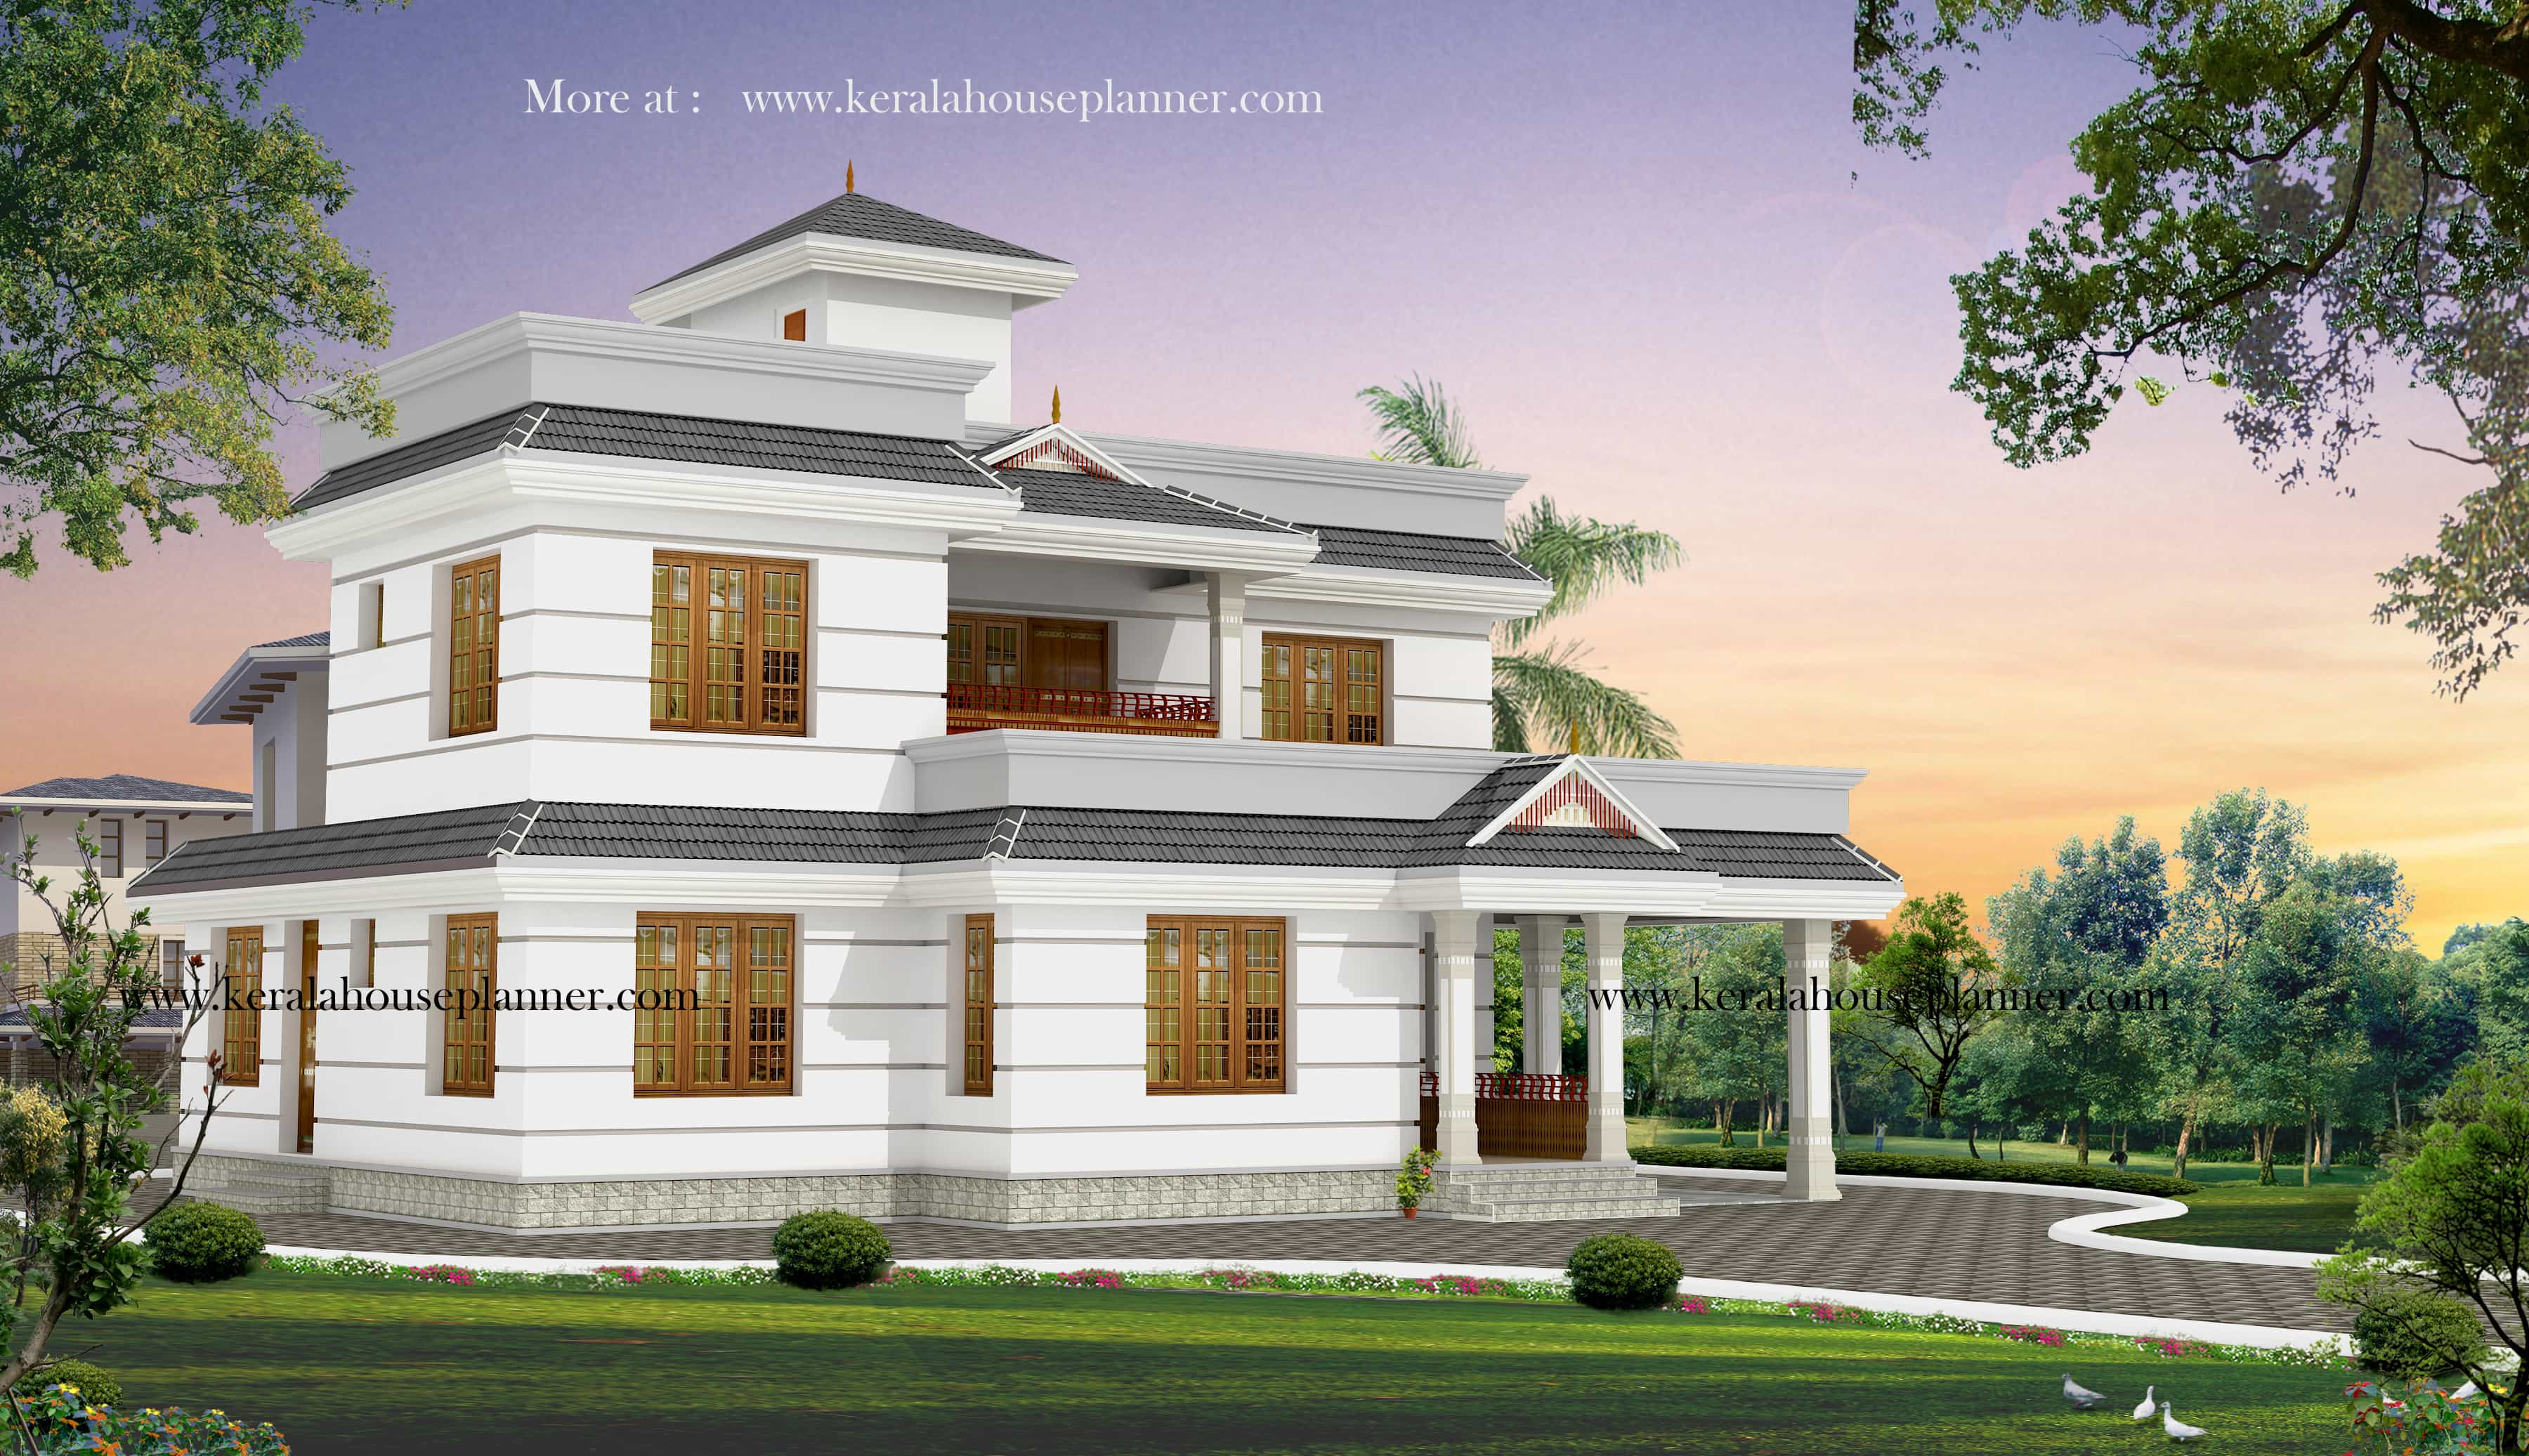 4bhk keralahouseplanner Home plan photos